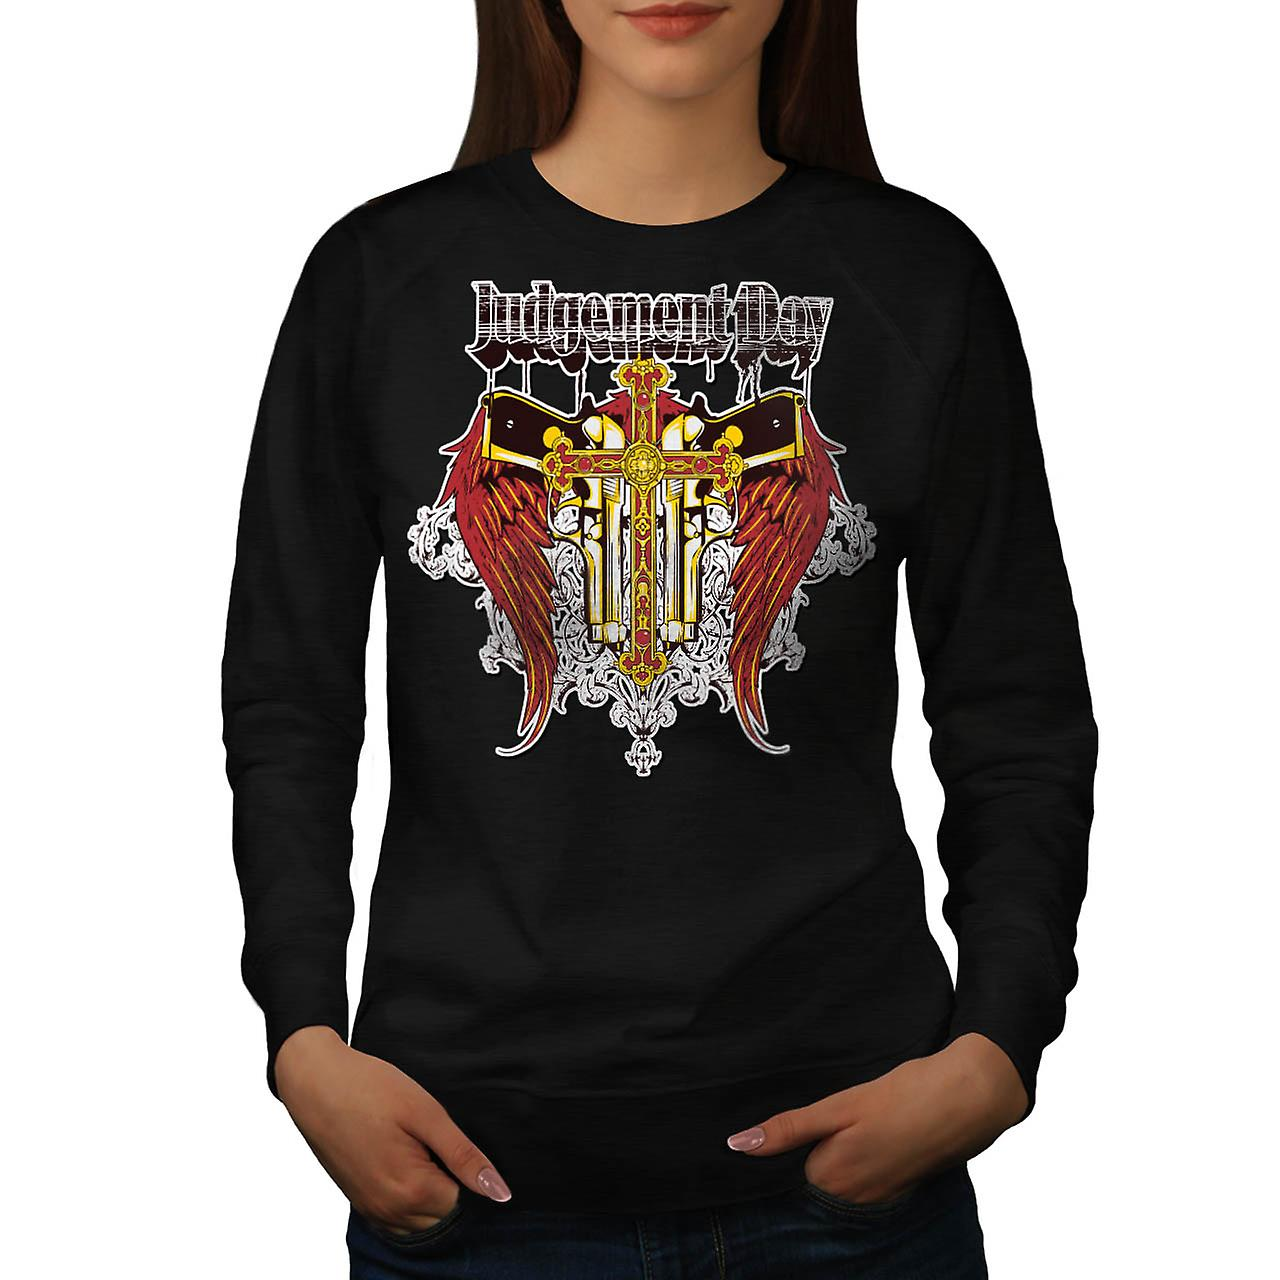 Judgement Day Hell Devils Lair Women Black Sweatshirt | Wellcoda